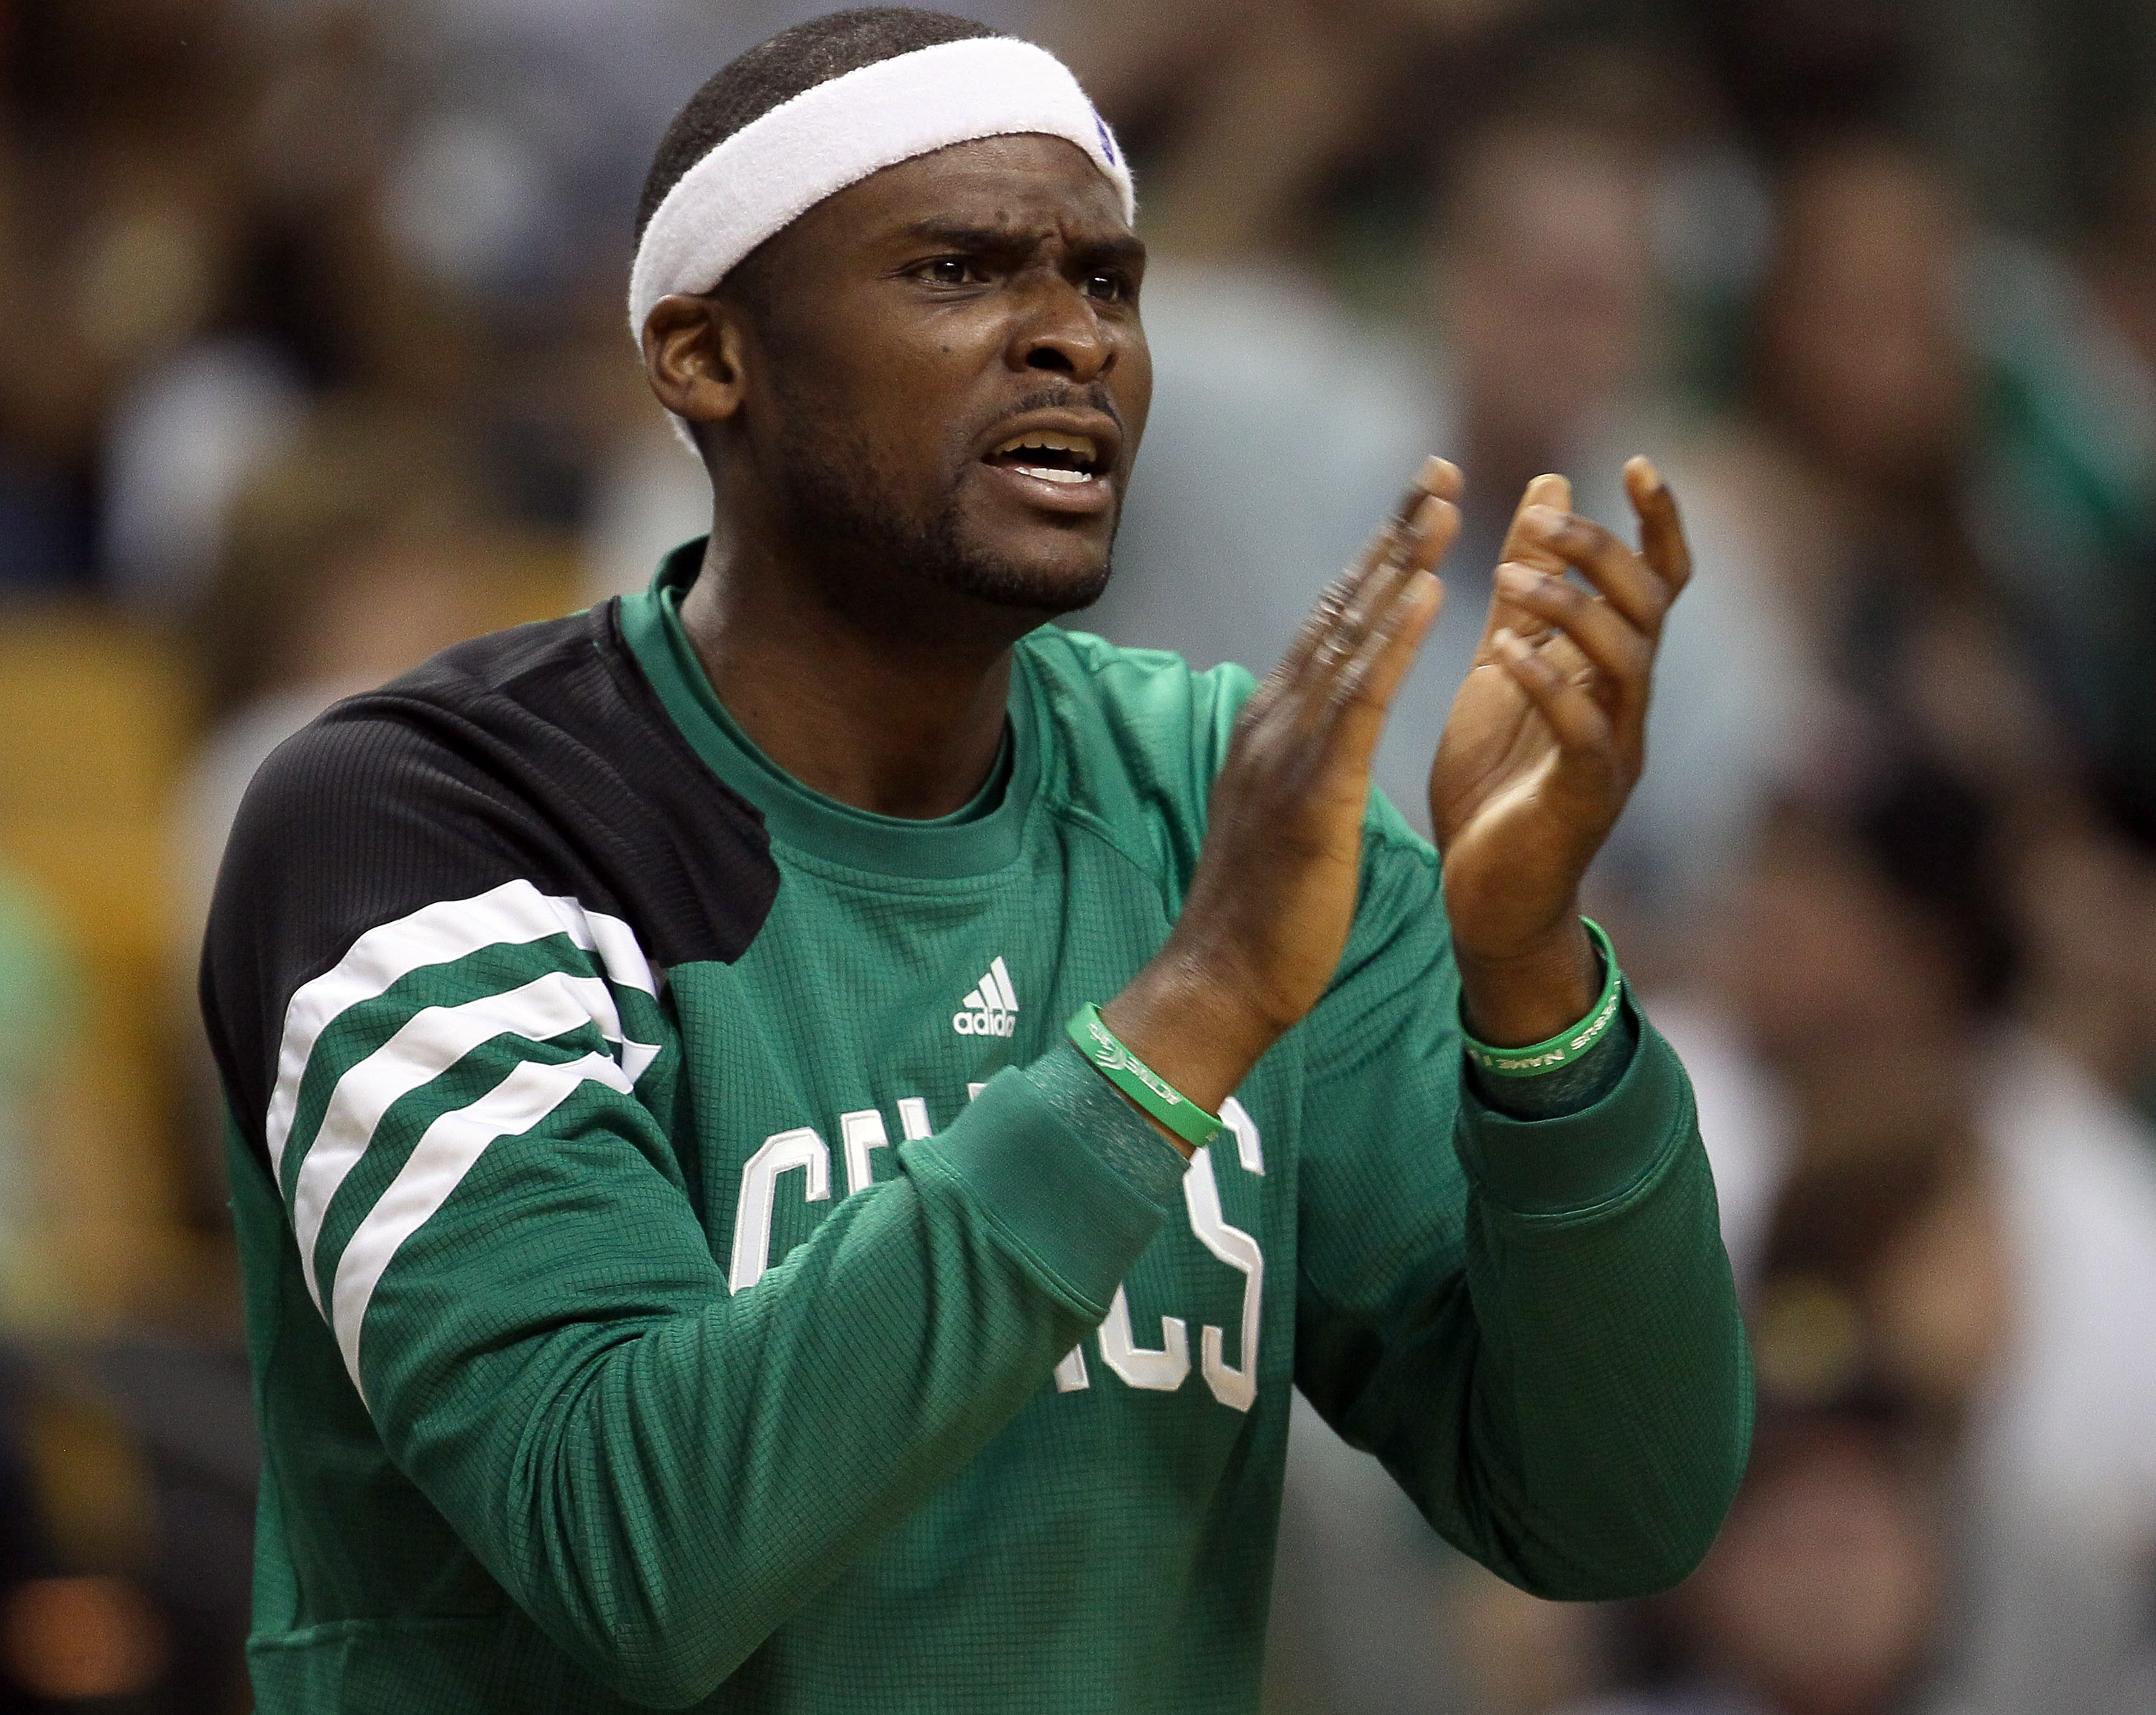 How Keyon Dooling Ended Up In A Mental Hospital